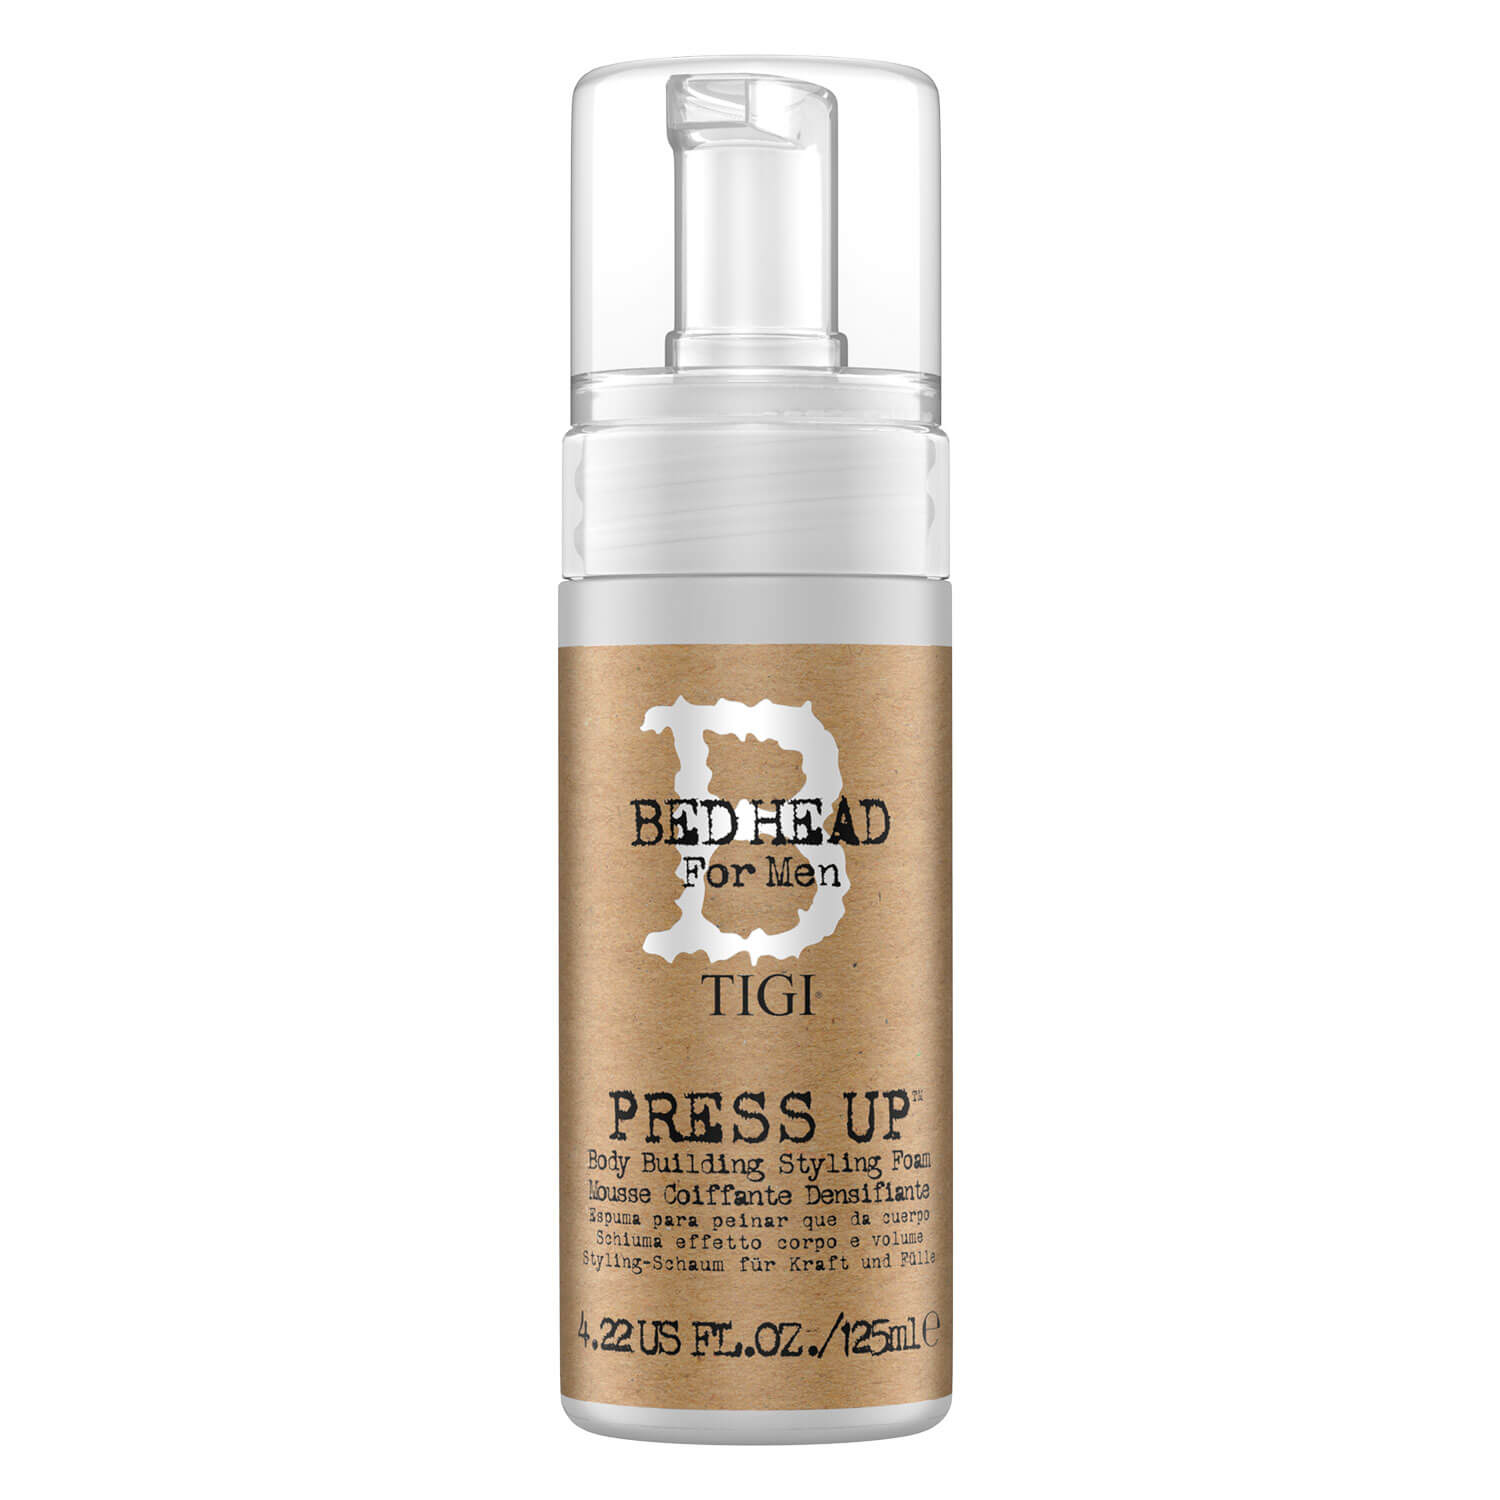 Bed Head For Men - Press Up